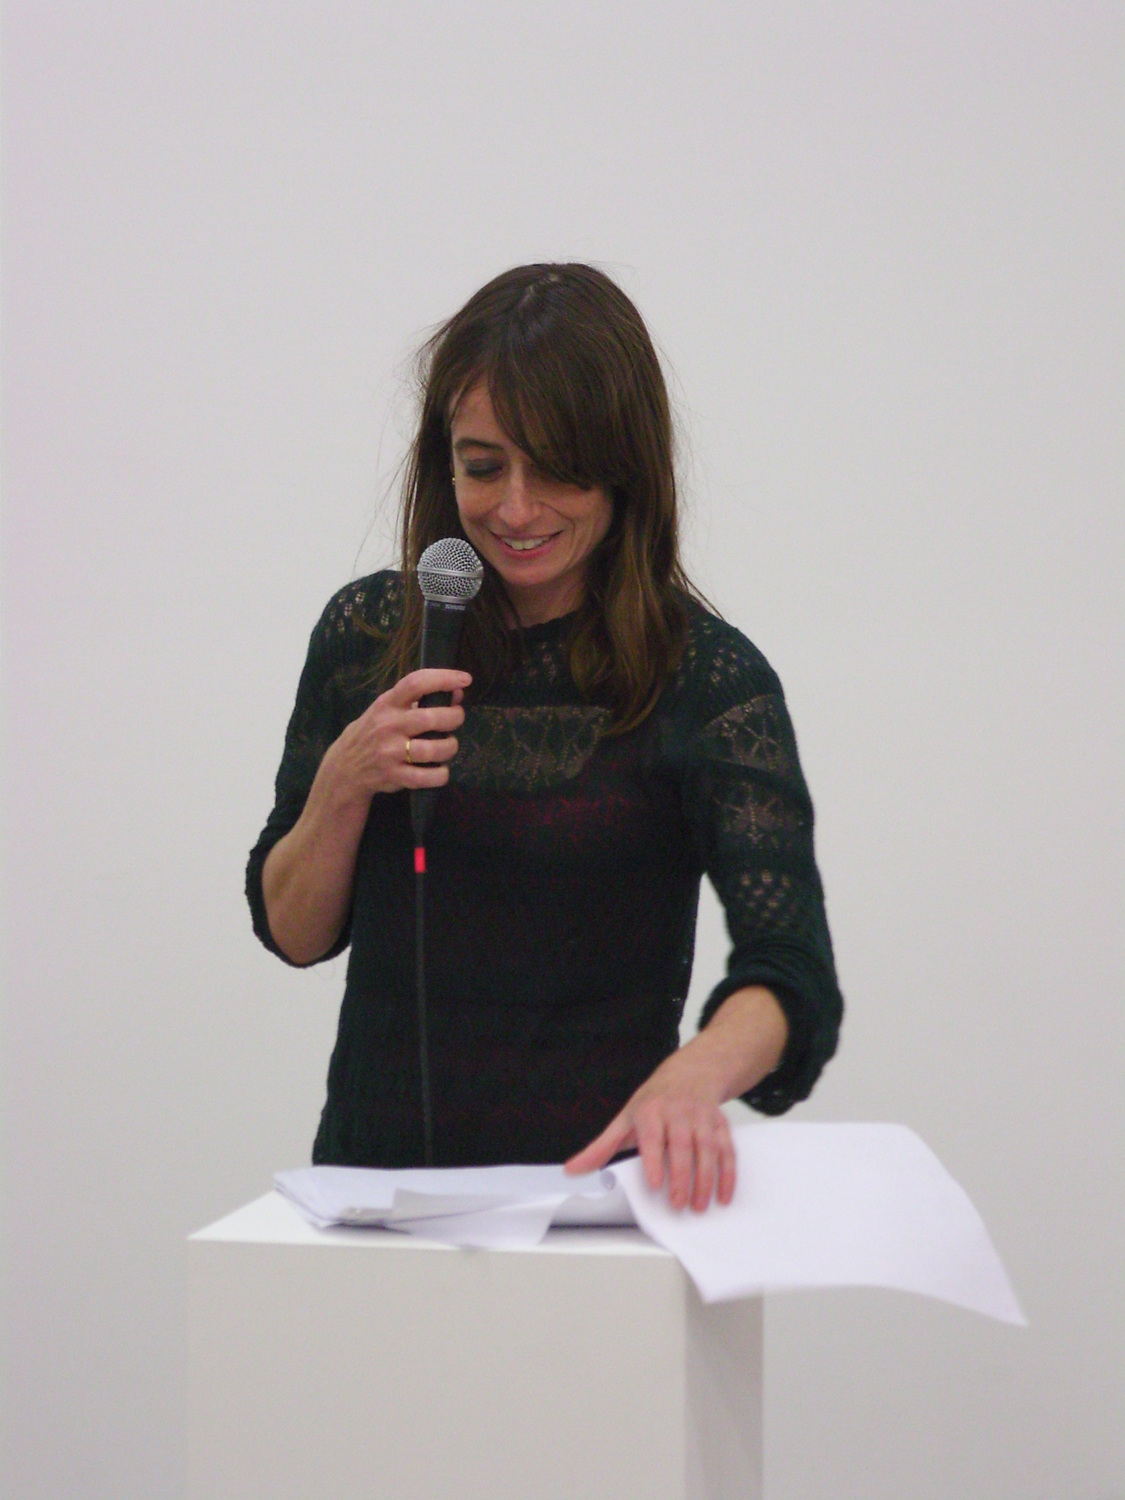 Performance documentation, Letherin through the grille, 2013, Performed at 'Expressions', The Modern Institute, Aird's Lane, Glasgow, 2013